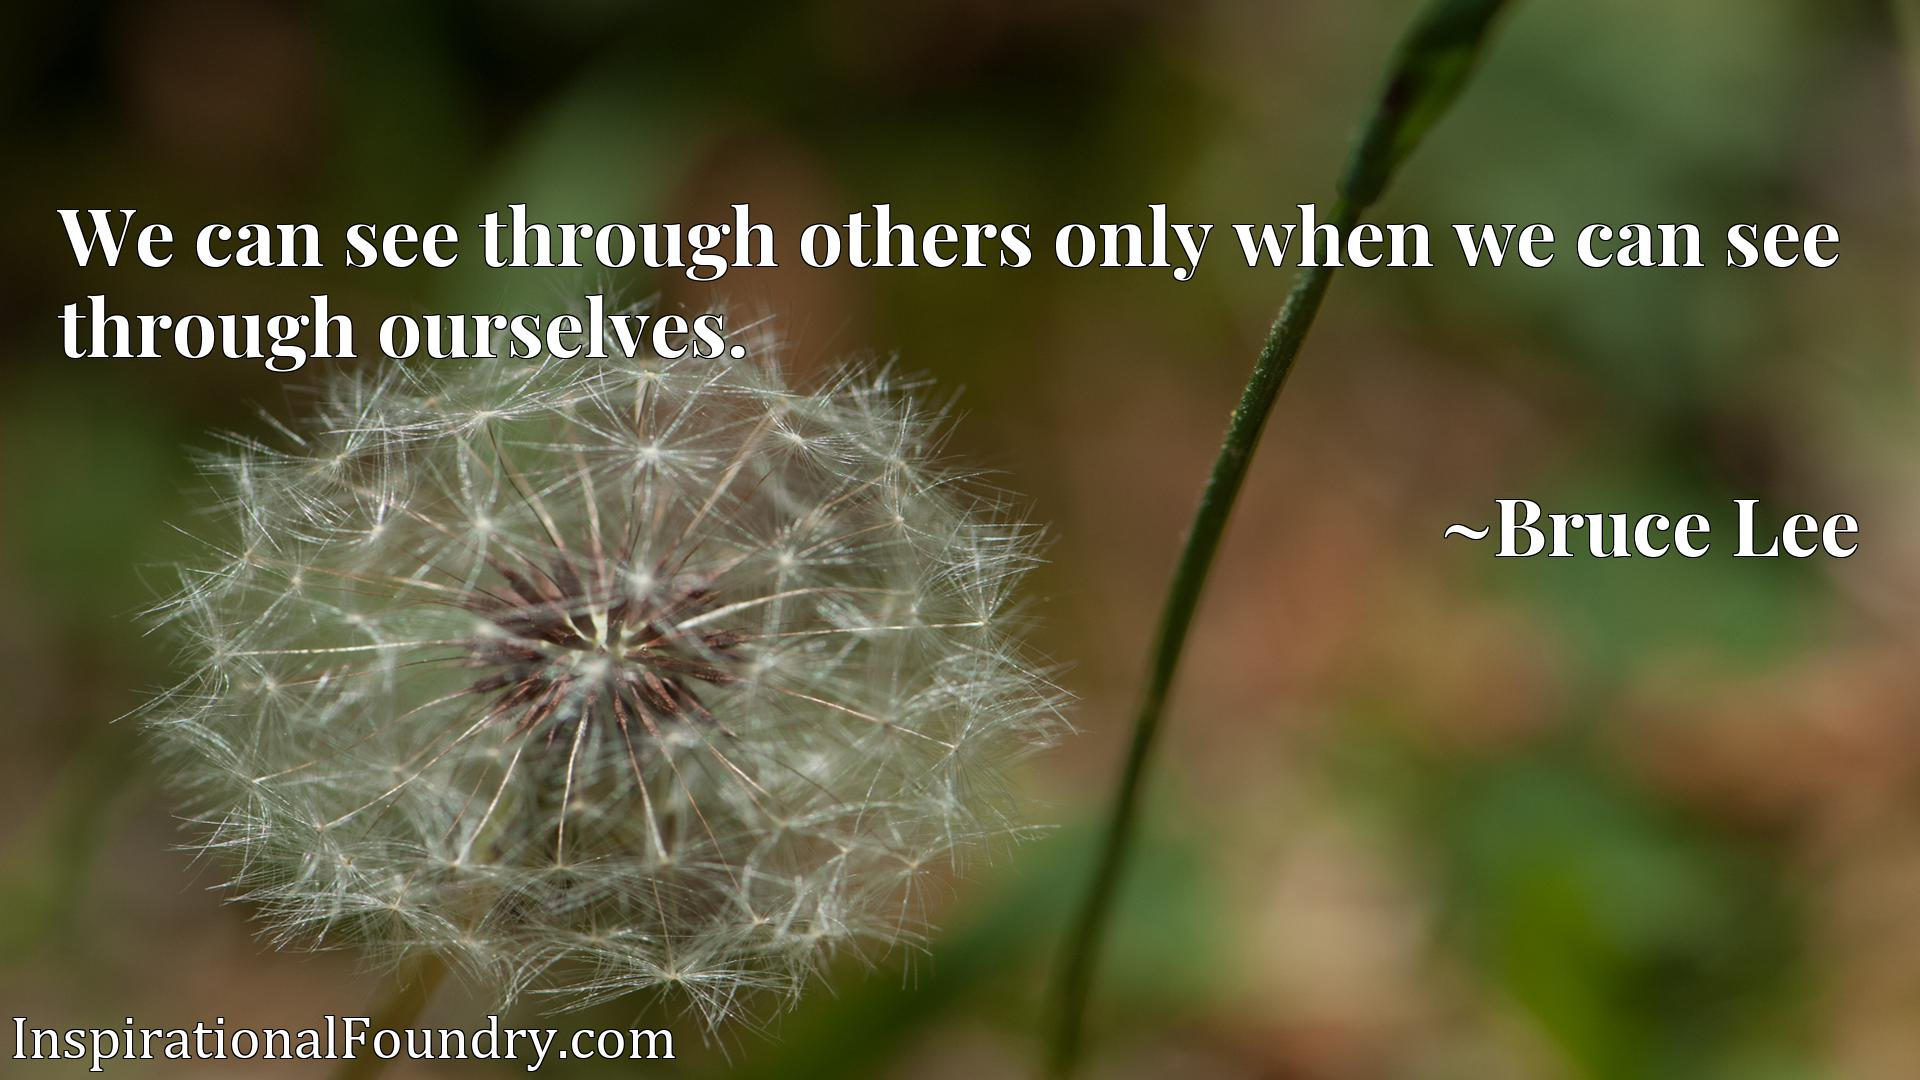 We can see through others only when we can see through ourselves.